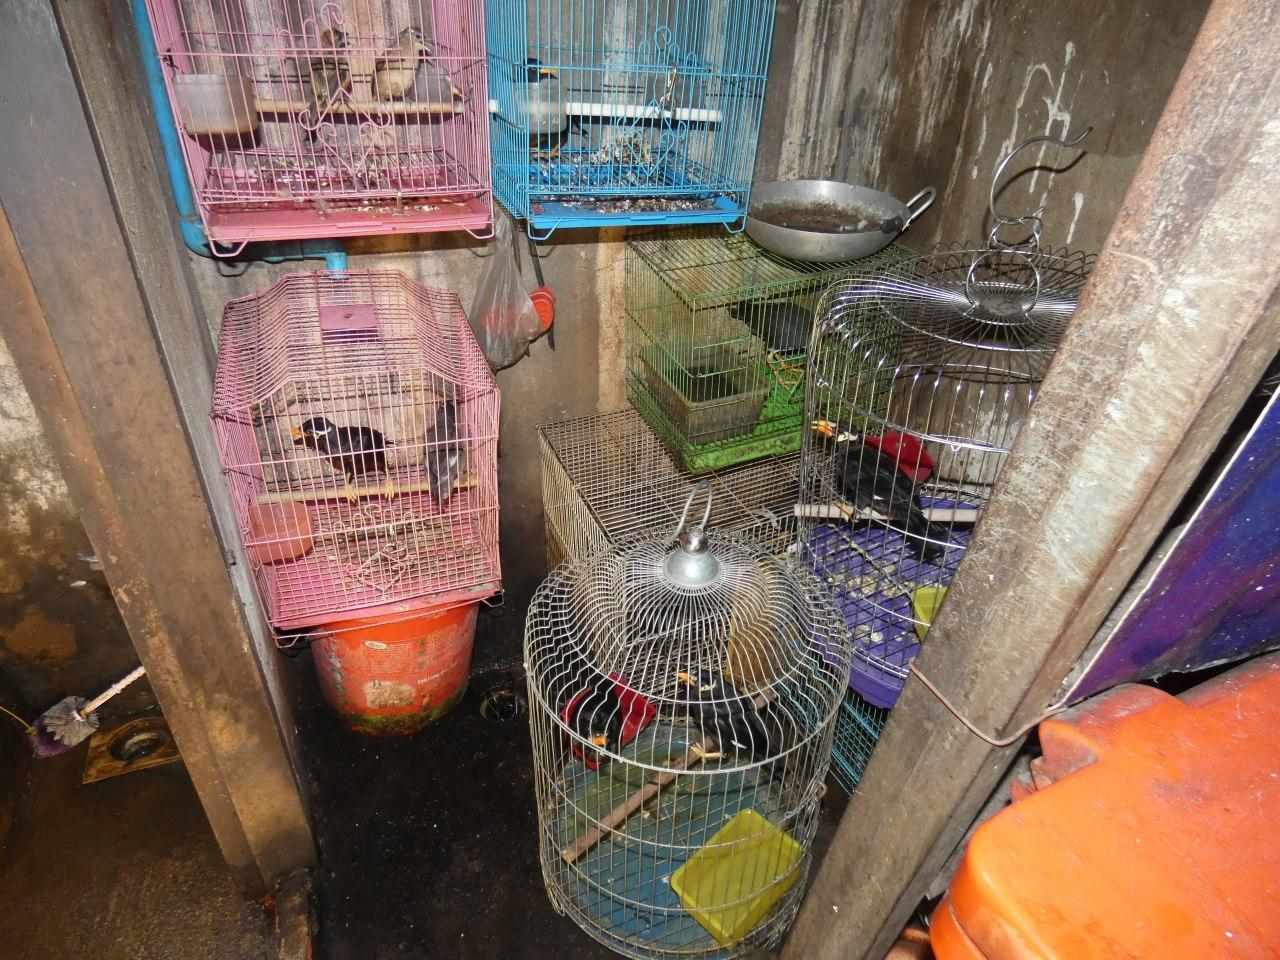 Myna birds confiscated by Wildlife Alliance from wildlife traffickers